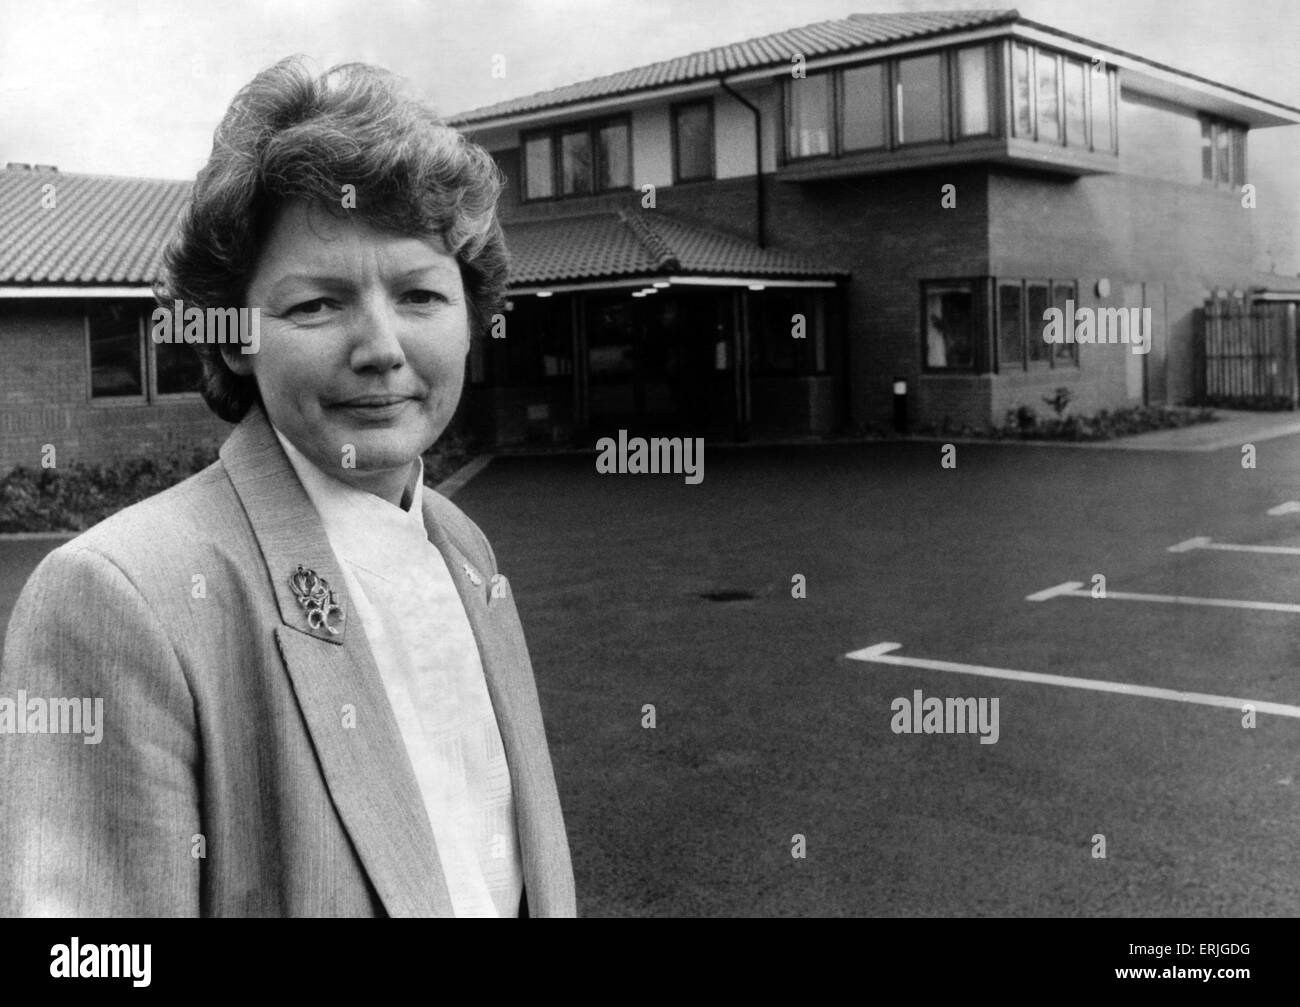 Sally Day, Director of the Acorns Children's Hospice, Oak Tree Lane, Selly Oak, Birmingham, 17th November 1988. - Stock Image